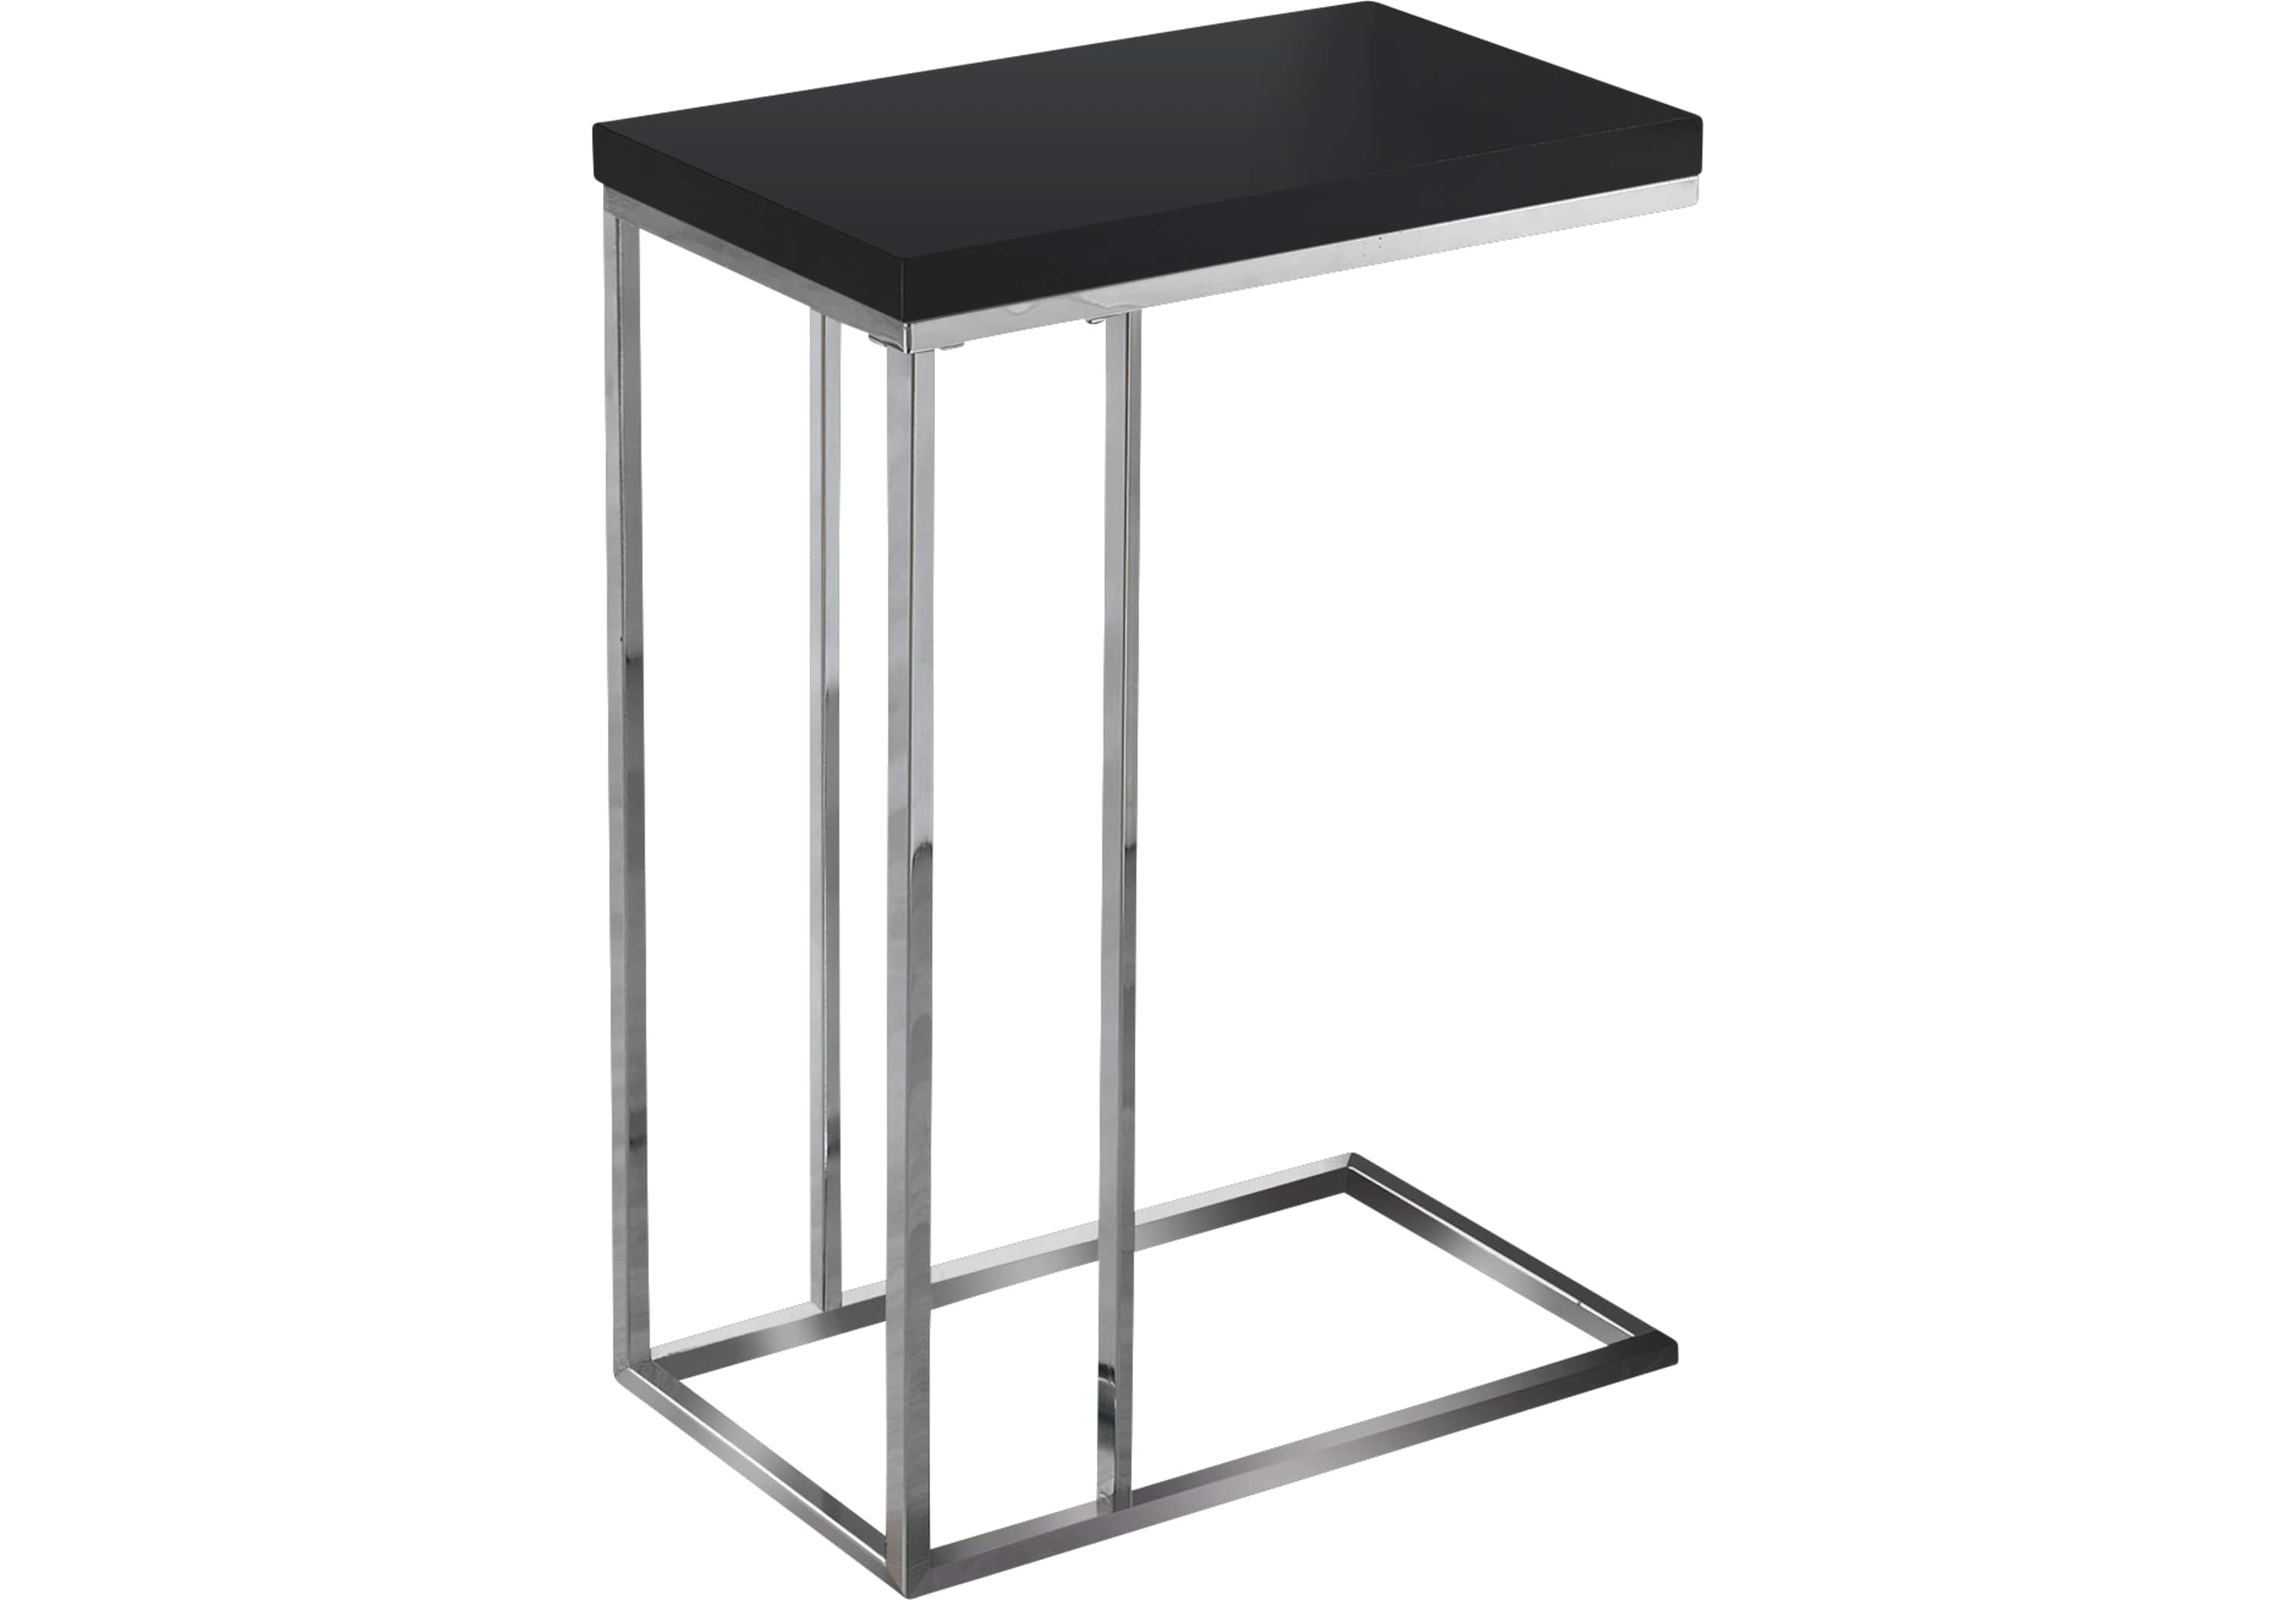 russleo black accent table tables colors product orange lamp mosaic tops outdoor glass and chrome side tiffany pond lily diy base small metal origami coffee stool ikea shelf